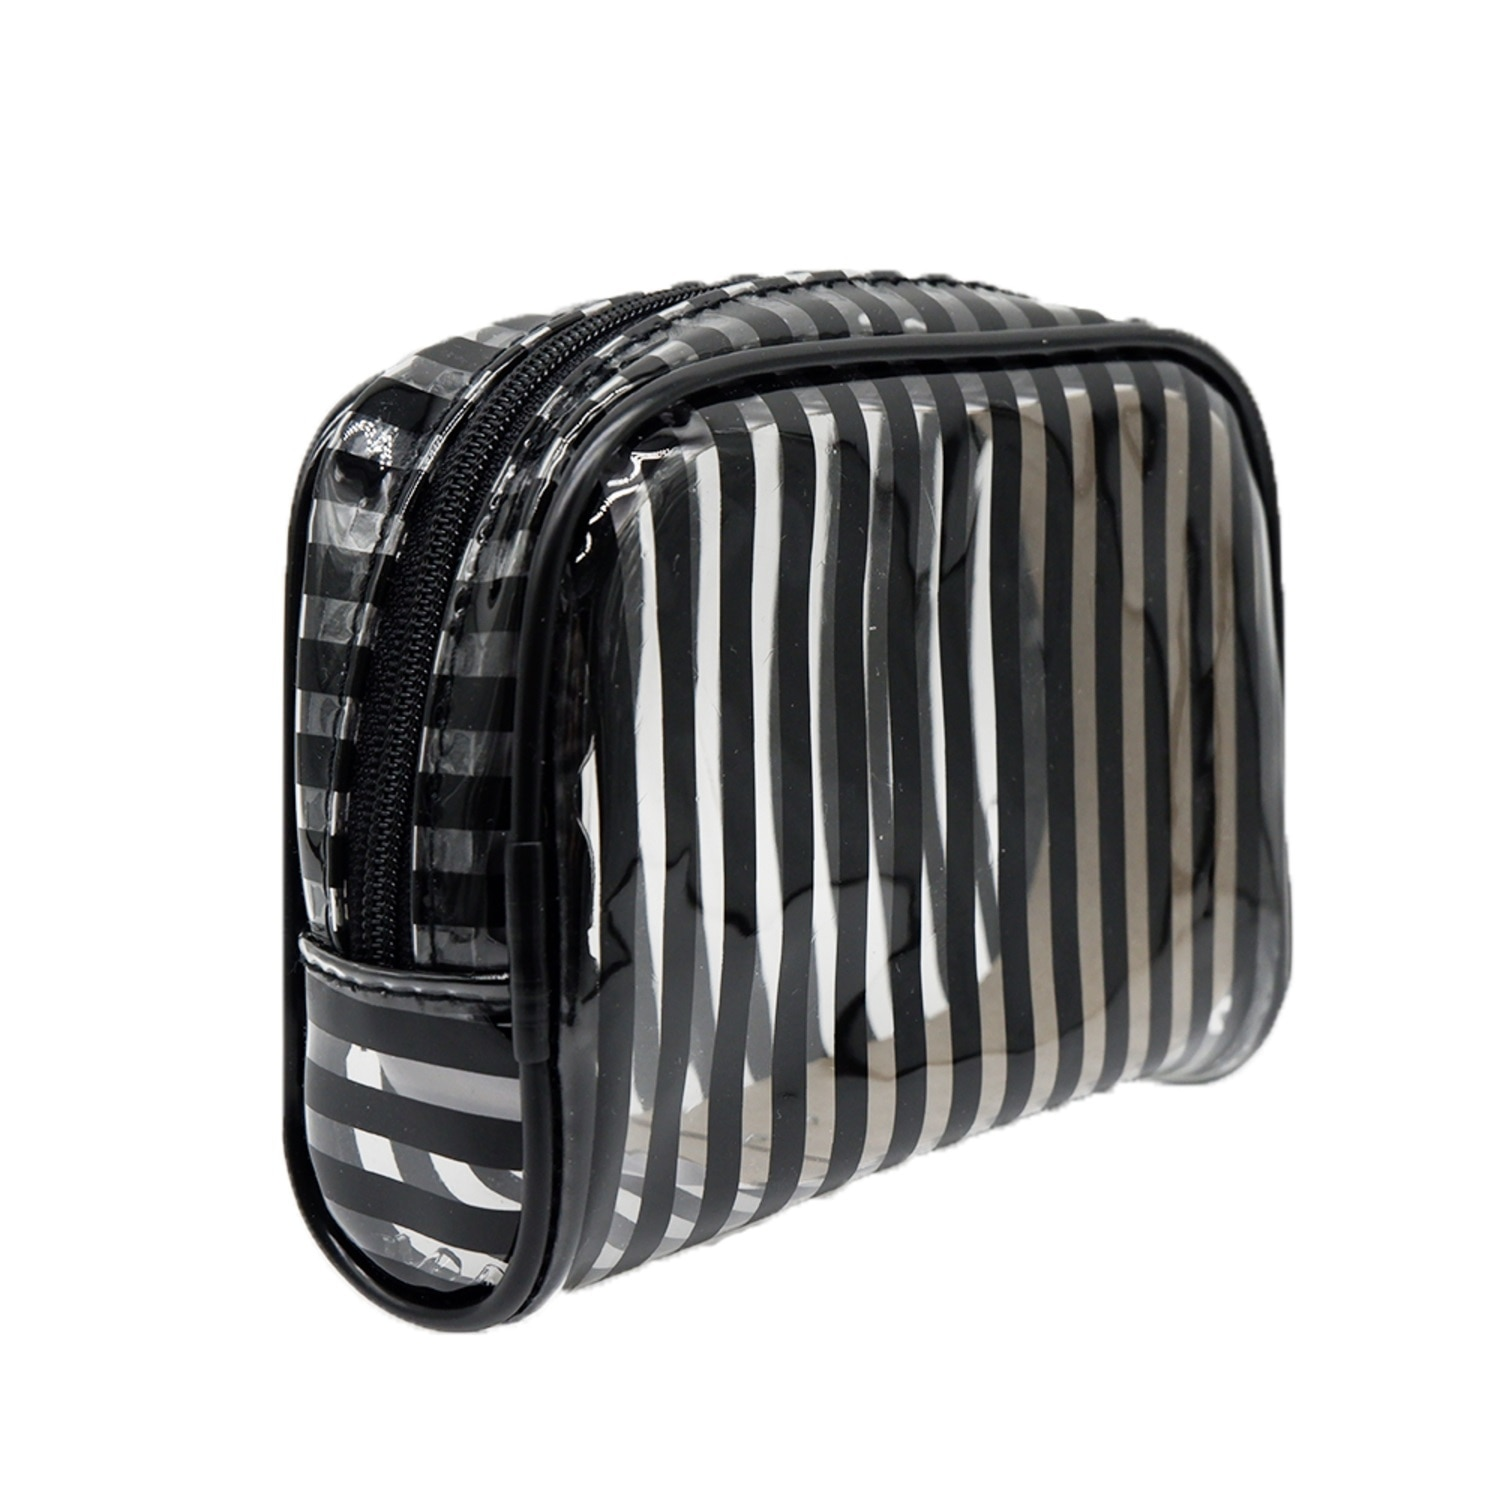 STYLESOURCEStripes Black Halfmoon Cosmetic Pouch,Home EssentialsWATSONS EMP. DISC.